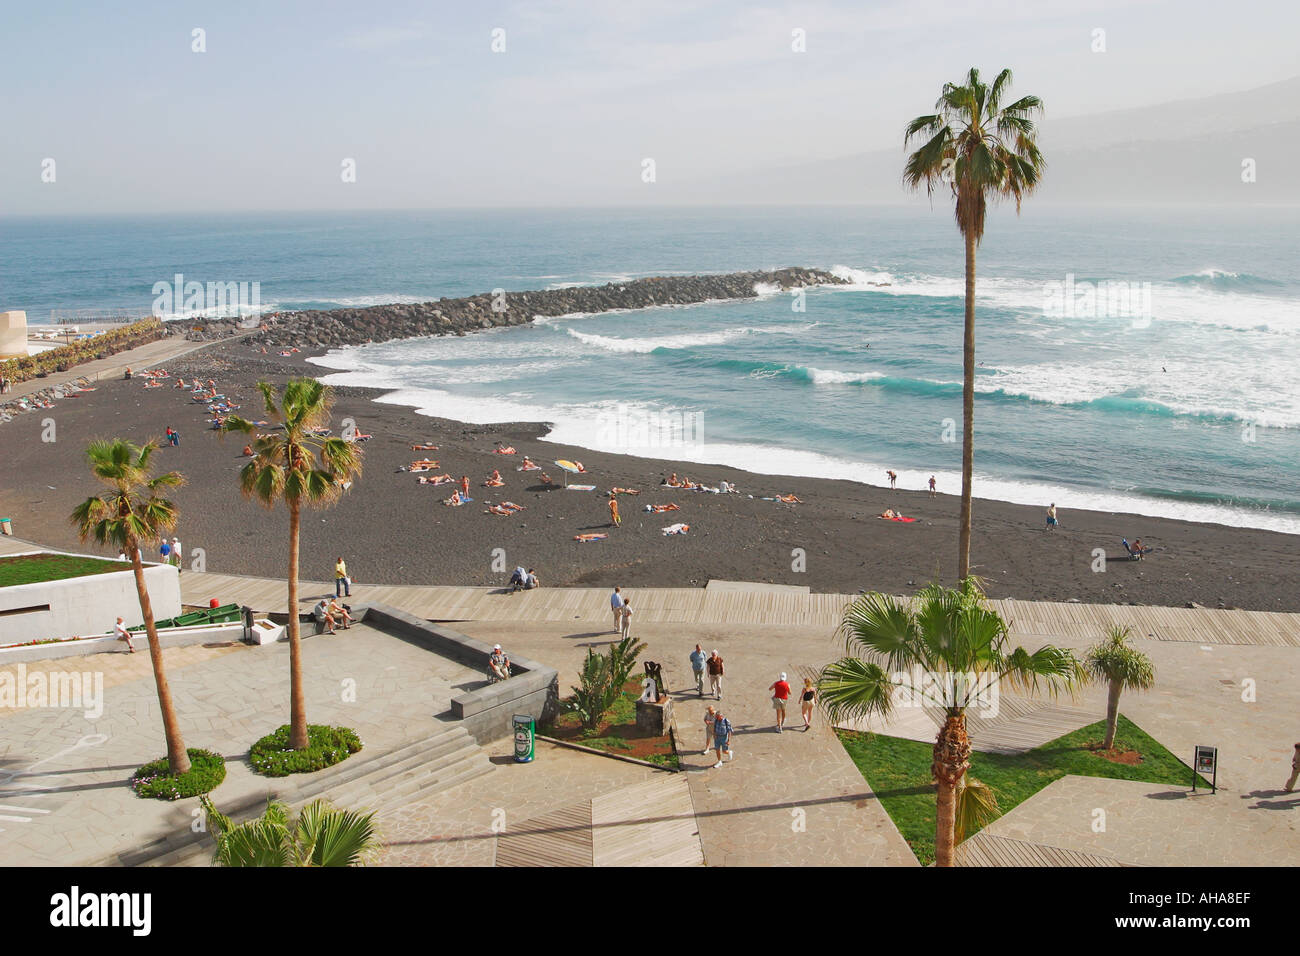 Puerto de la cruz tenerife canary islands spain playa stock photo royalty free image - Playa puerto de la cruz tenerife ...